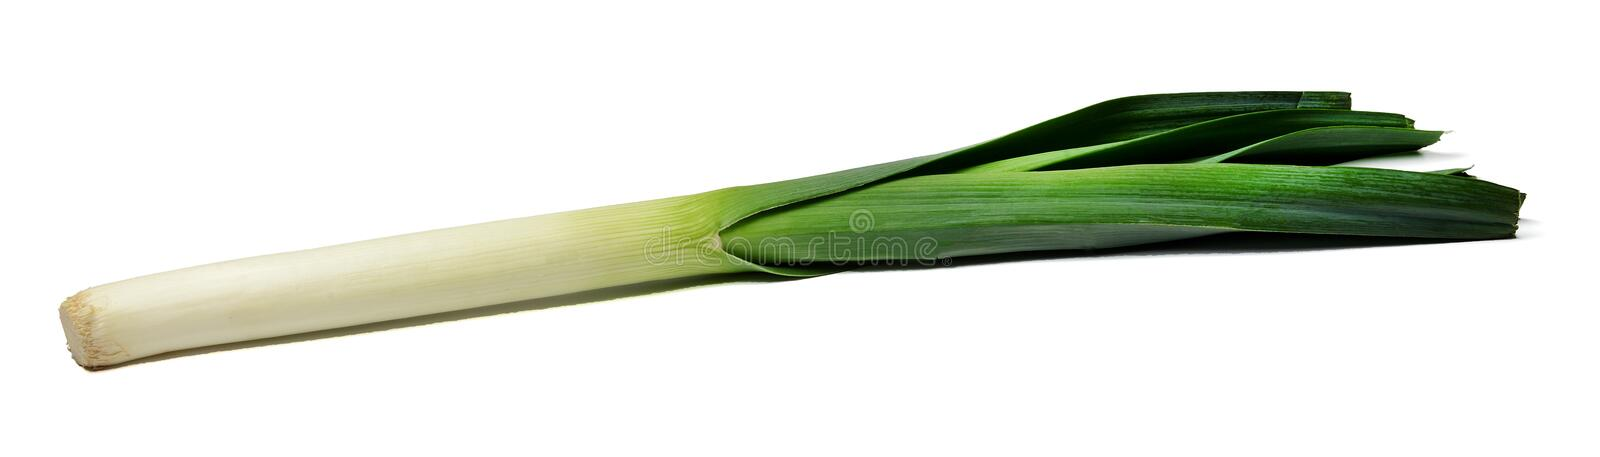 Freshly cut leek in a long rectangular frame. White isolated background. Close-up. royalty free stock photo